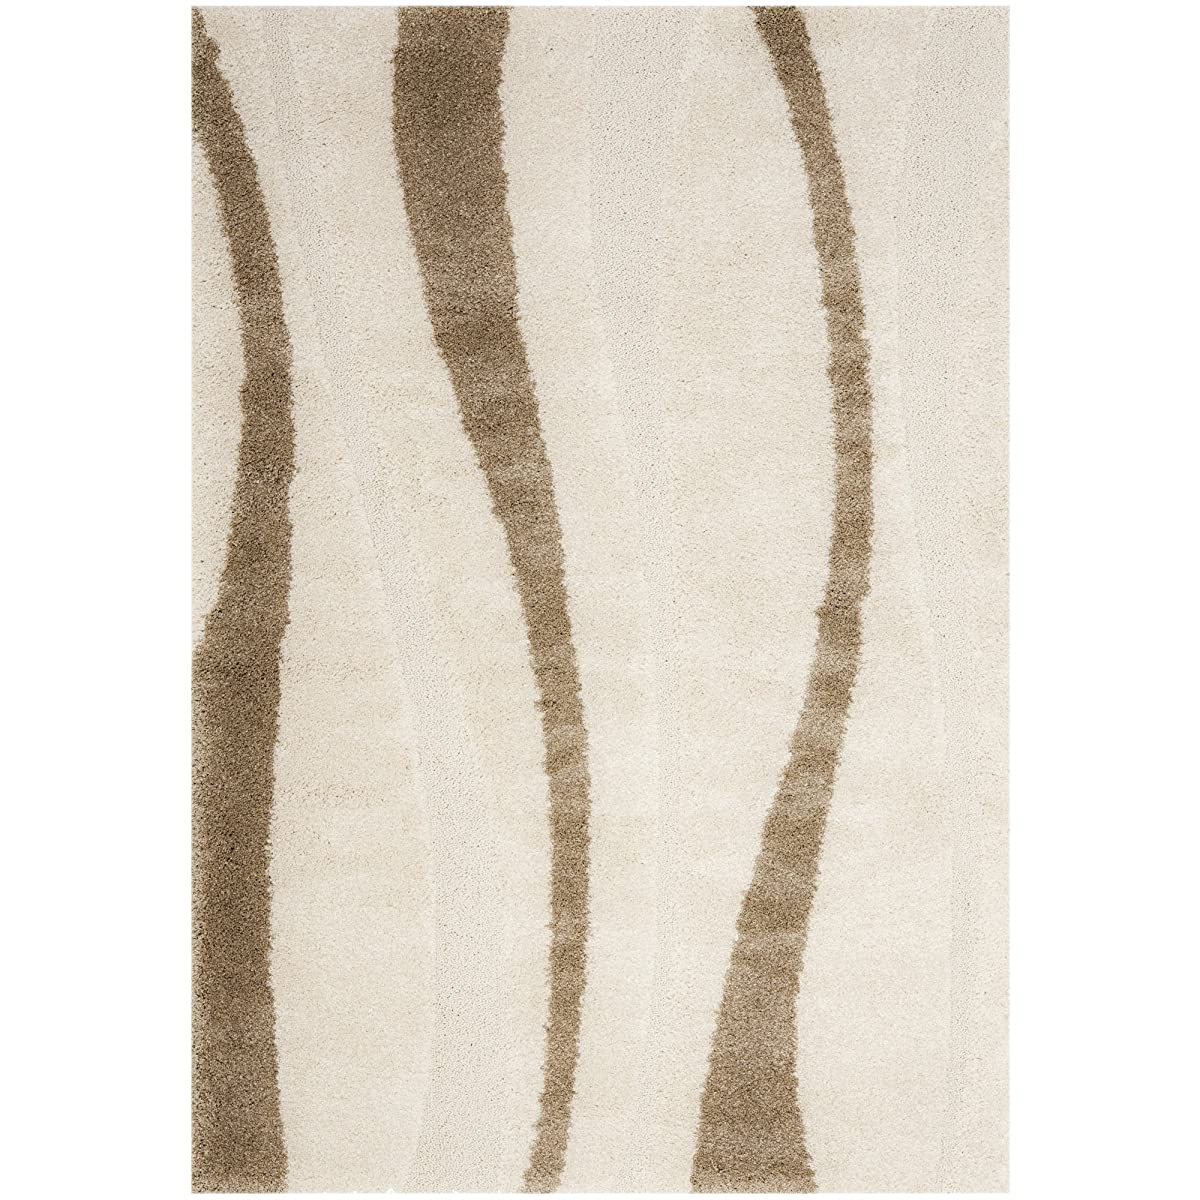 Safavieh Willow Shag Collection SG451-1128 Cream and Dark Brown Area Rug (8' x 10')